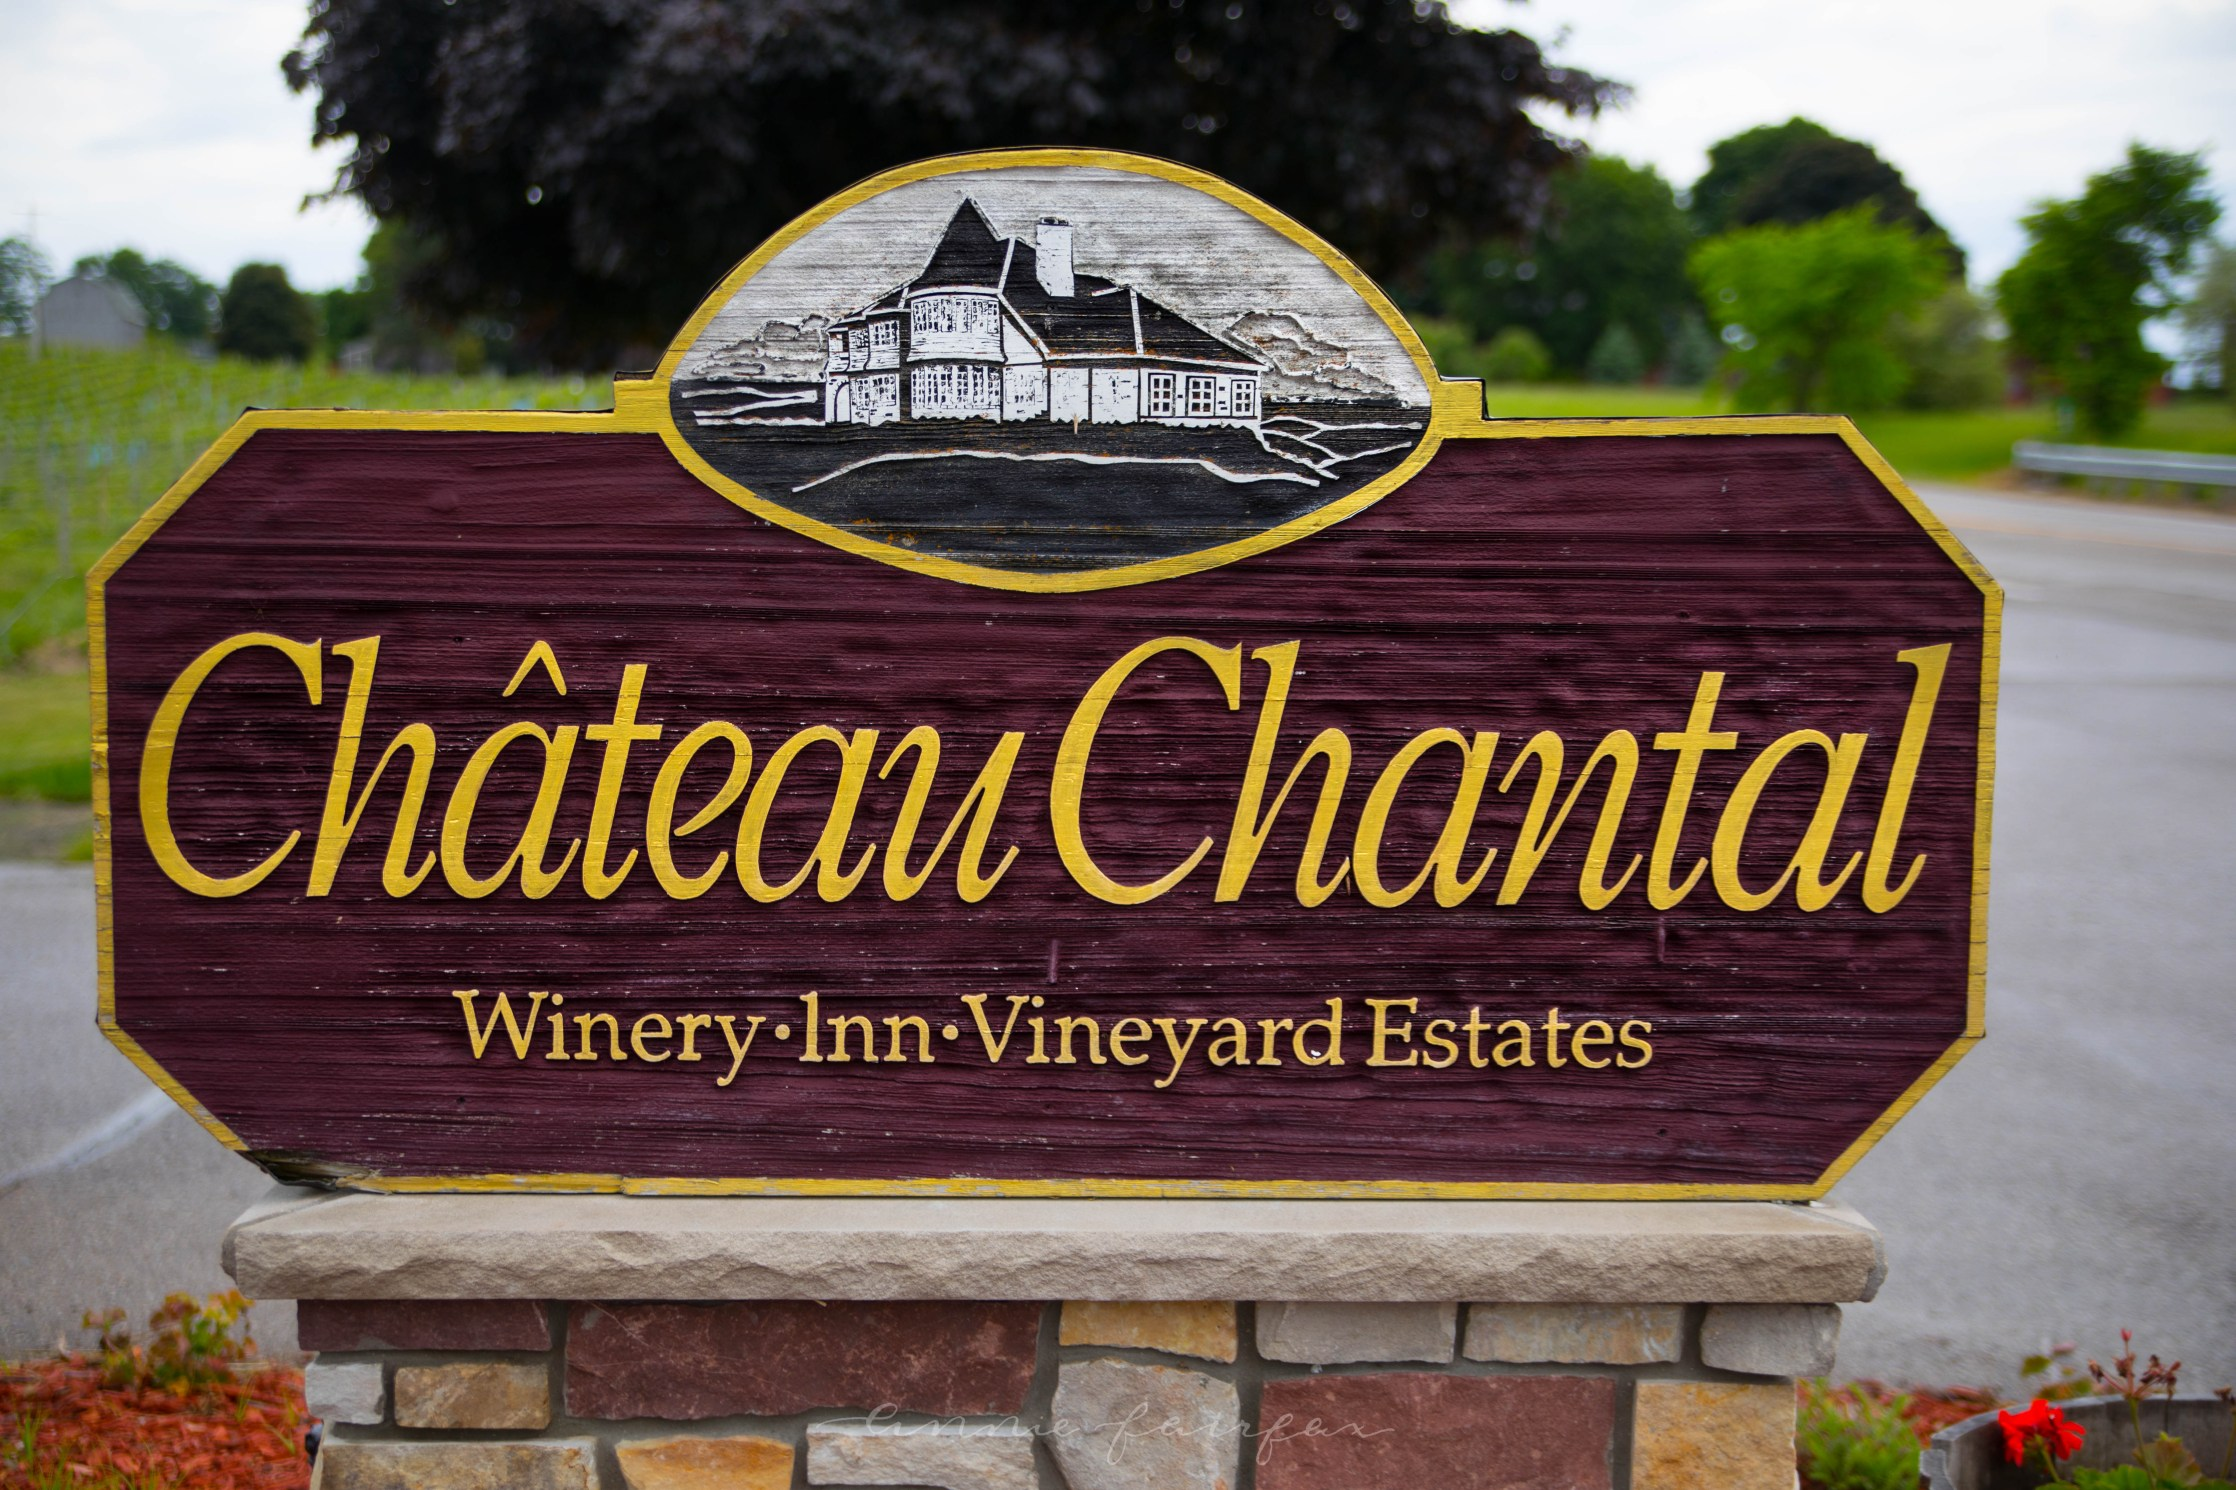 Chateau Chantal Where to Stay near Traverse City, Michigan The Complete Traveler's Guide to Traverse City, MI